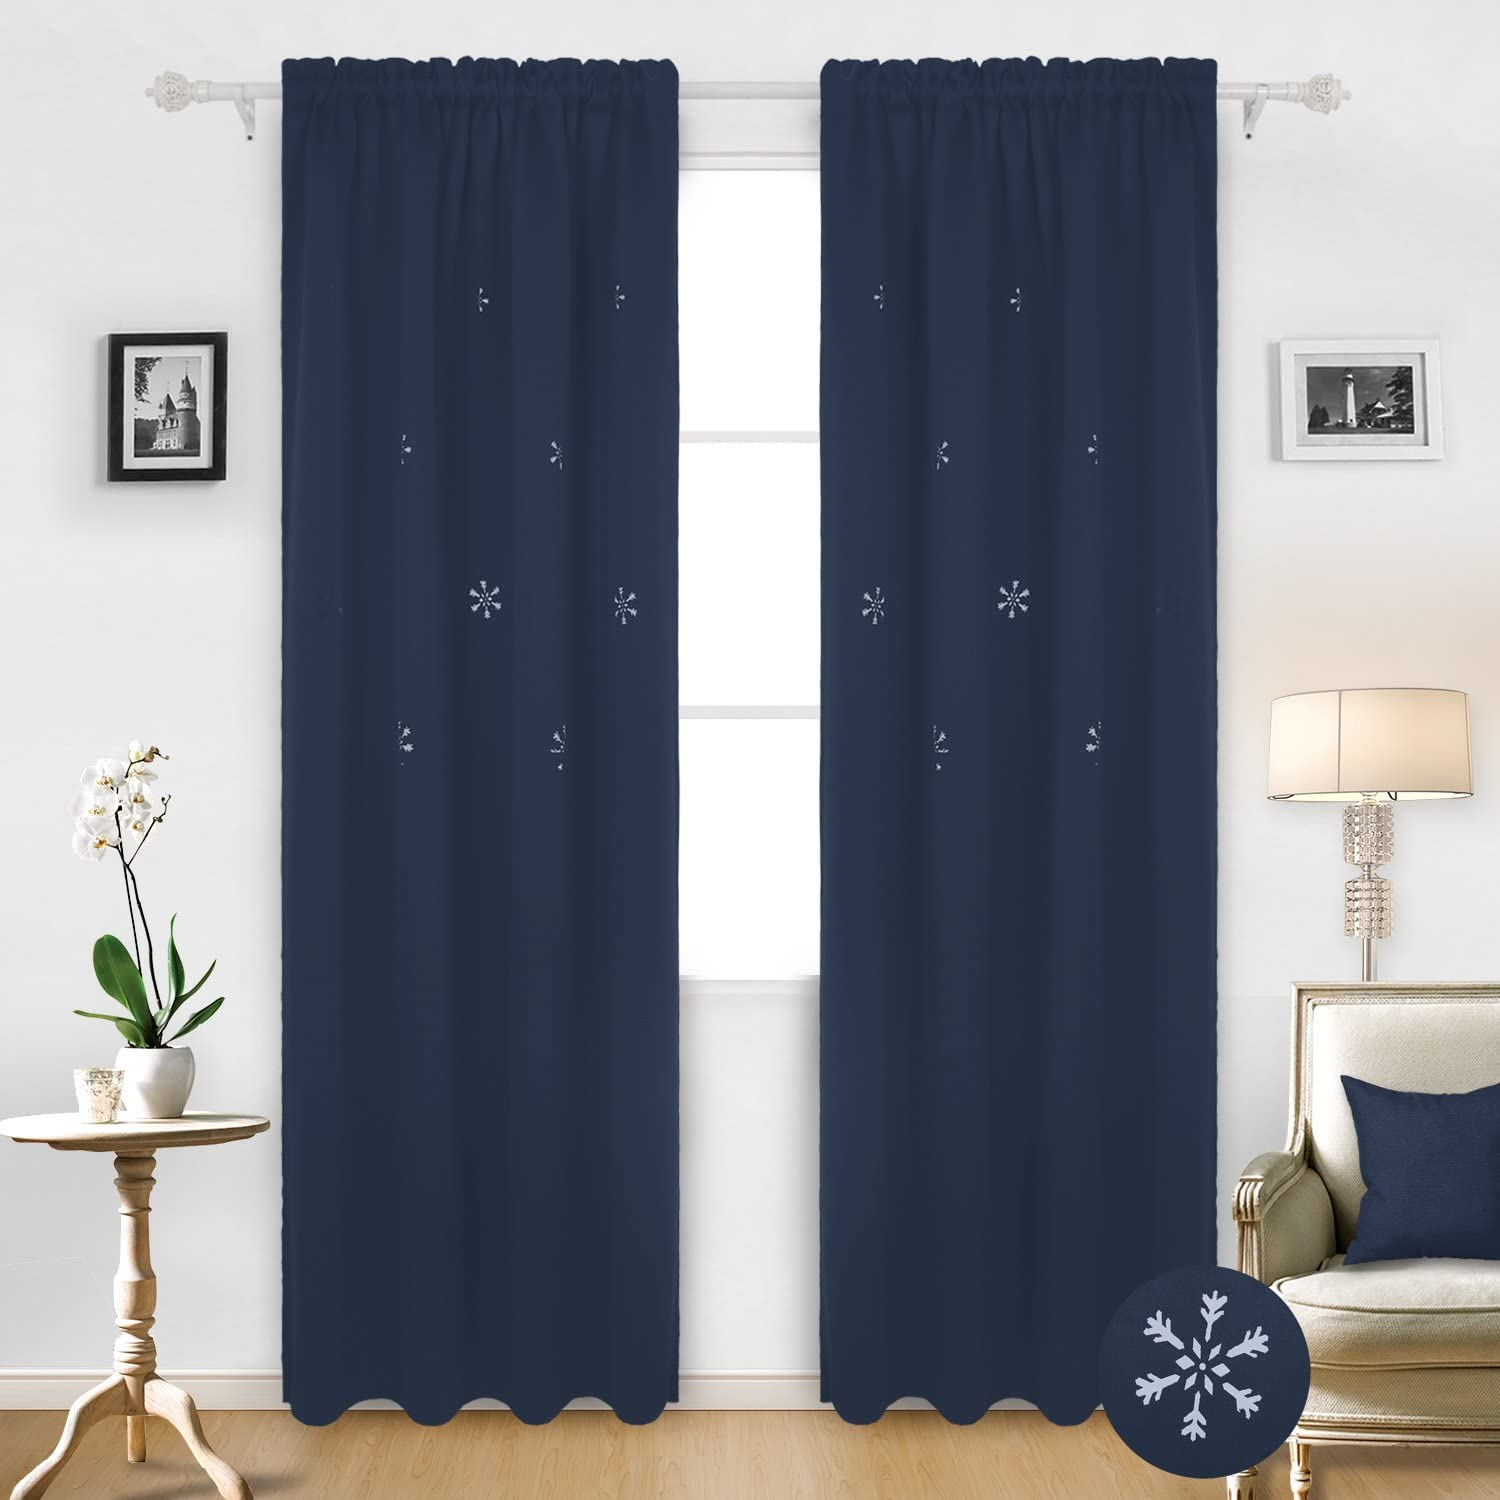 Deconovo Thermal Insulated Rod Pocket Christmas Blackout Curtains Snowflake Hollow Out Panels for Living Room, 52x95 Inch, Navy Blue